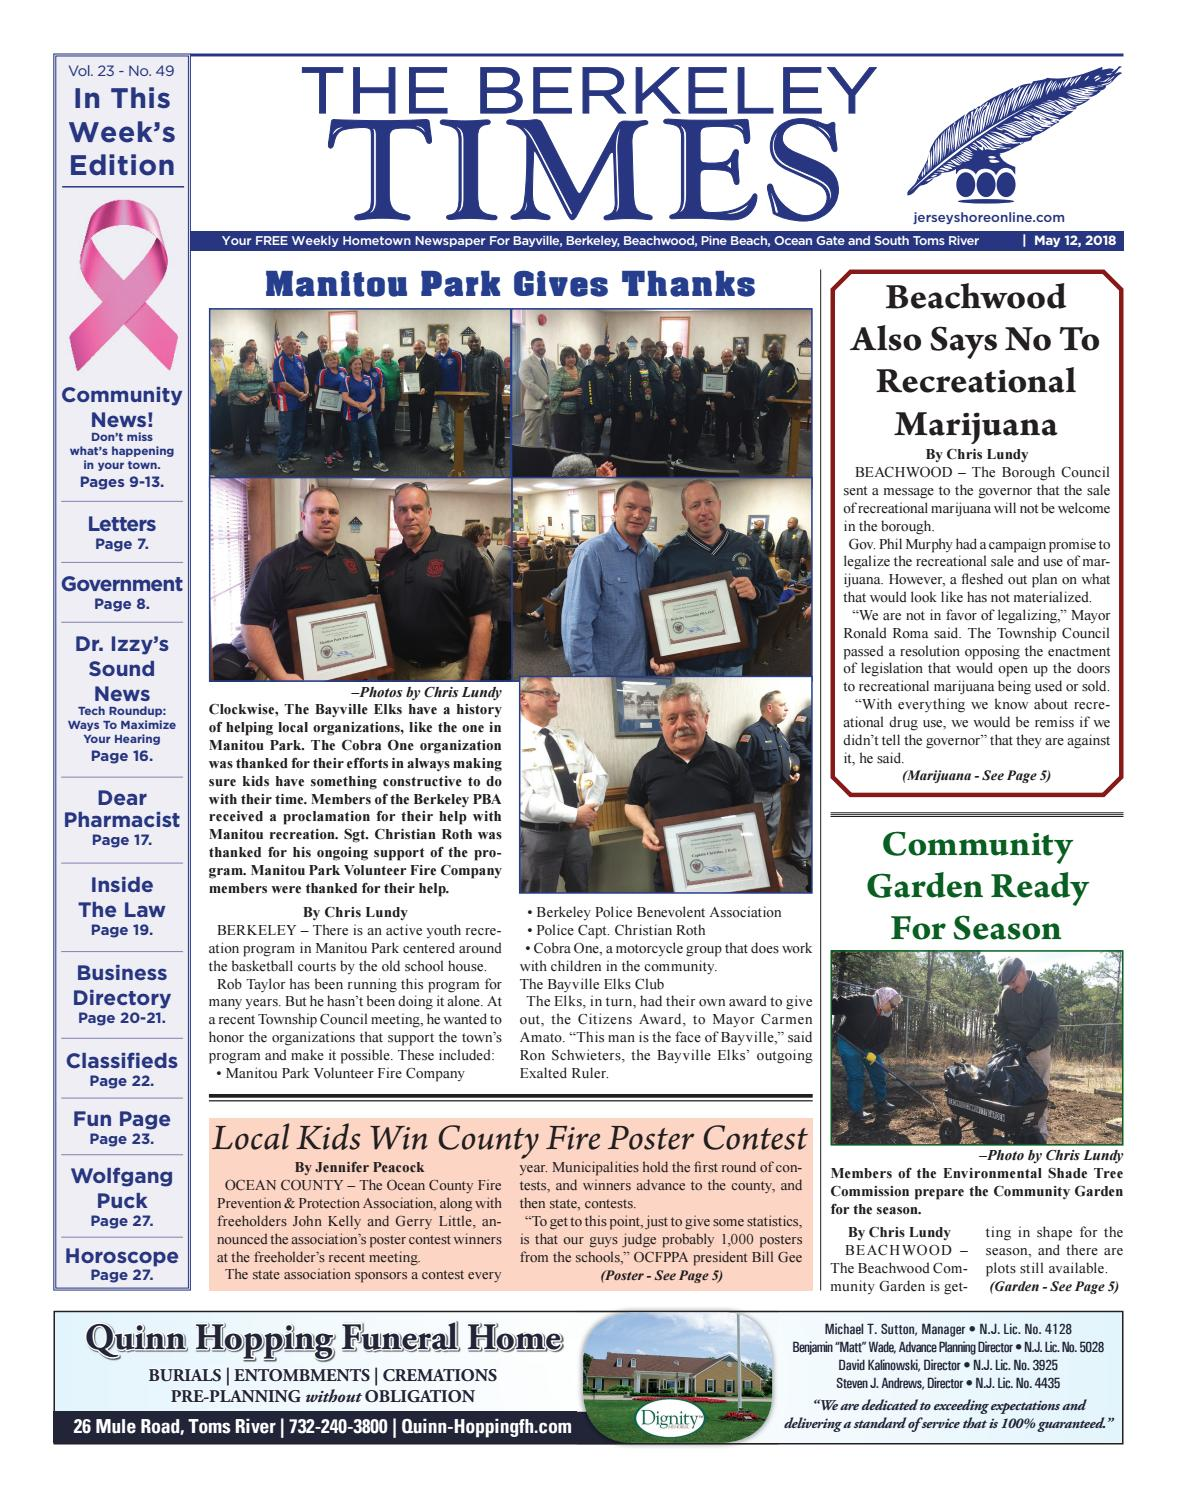 2018-05-12 - The Berkeley Times